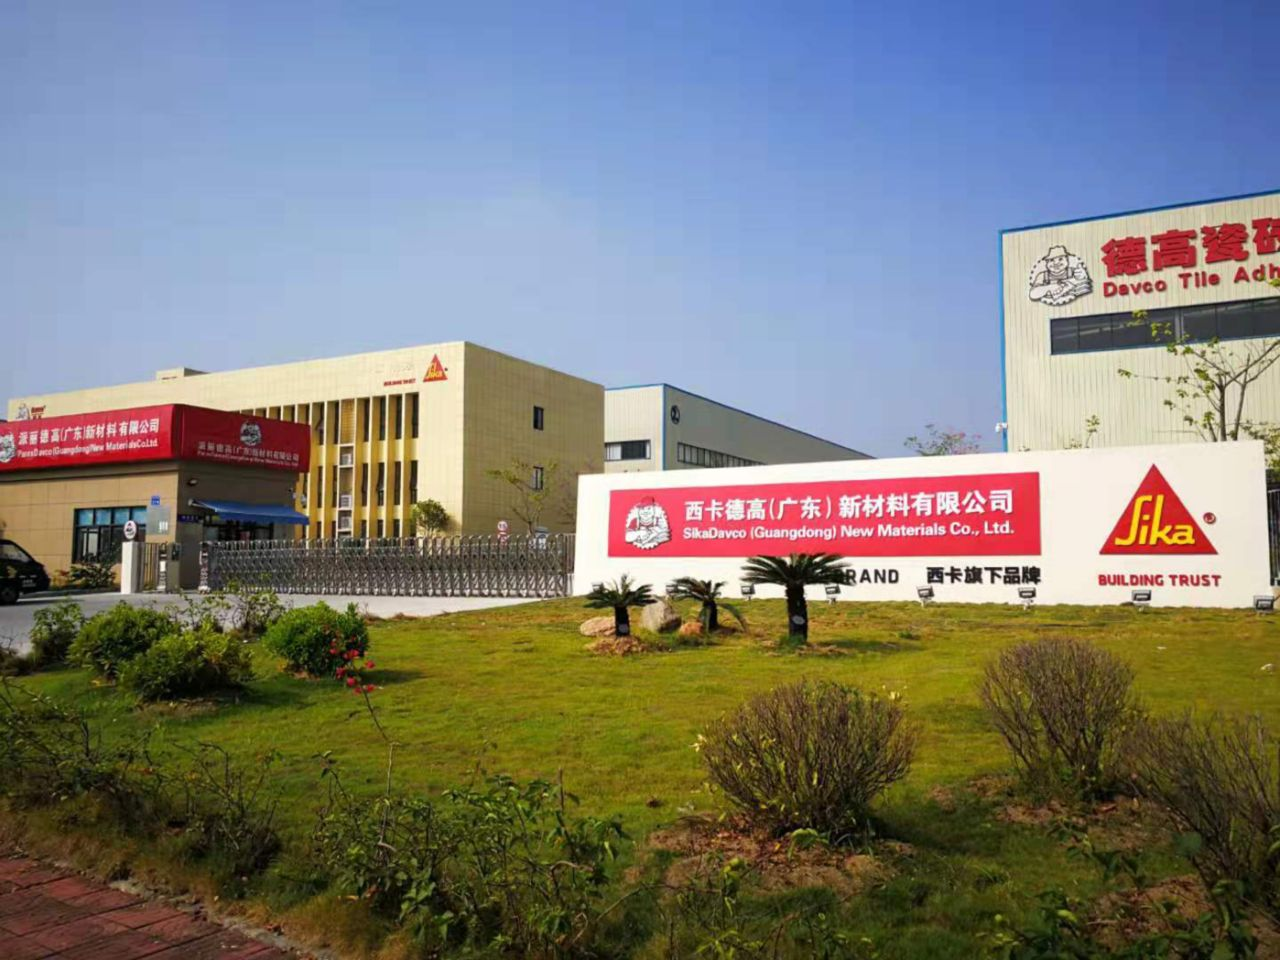 Outside view of Sika Davco plant in Guangzhou